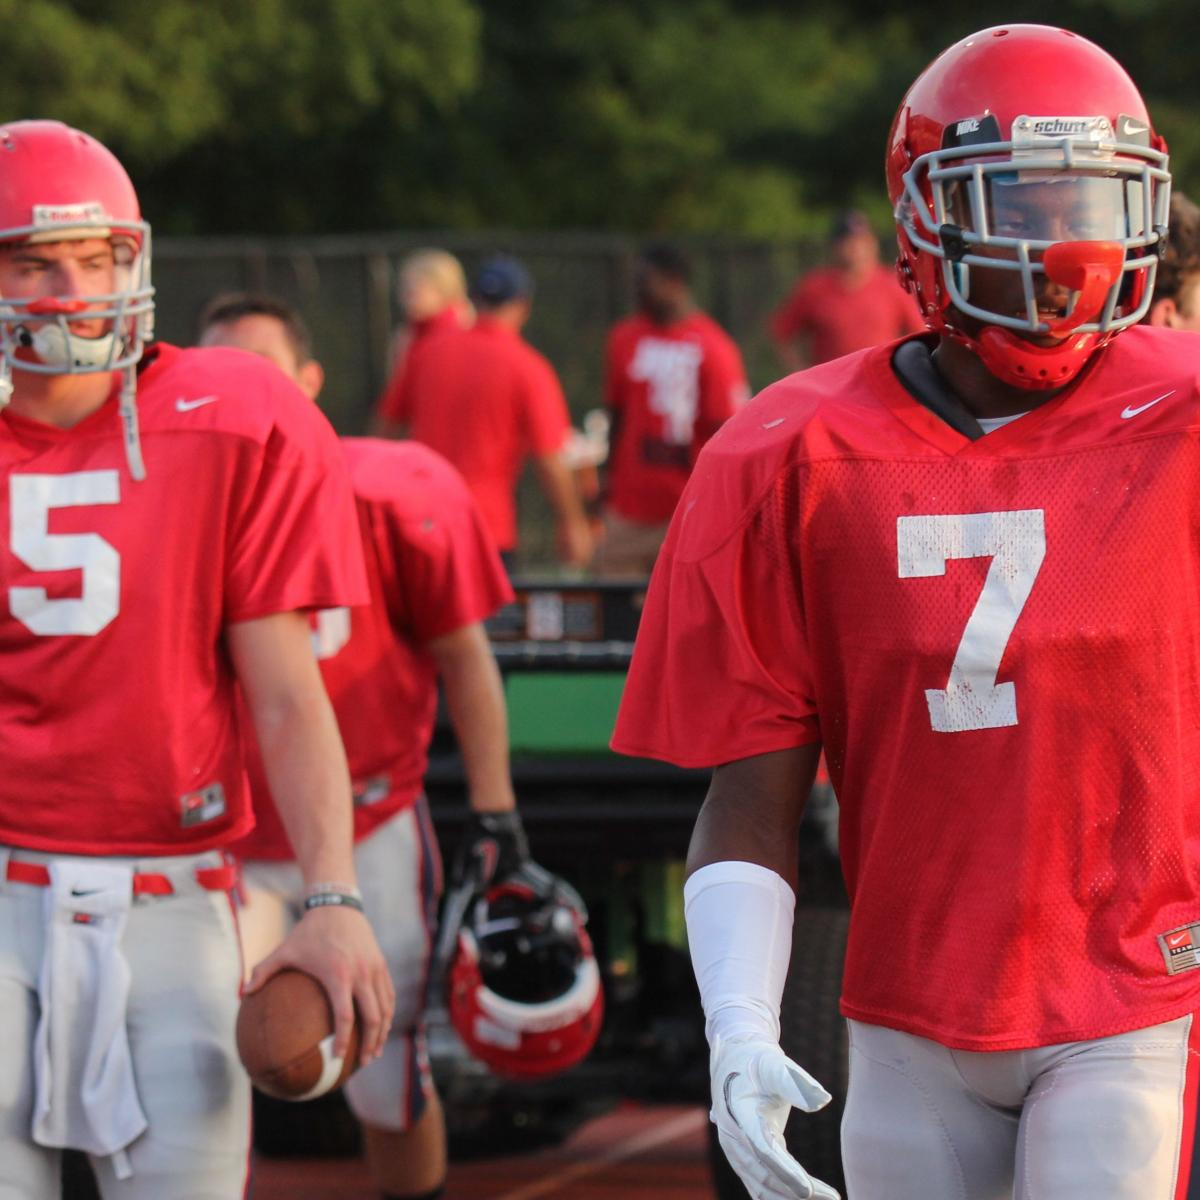 lowest price bc50a 0be58 USC's 5-Star DB Jalen Ramsey and More Recruits to Watch on ...